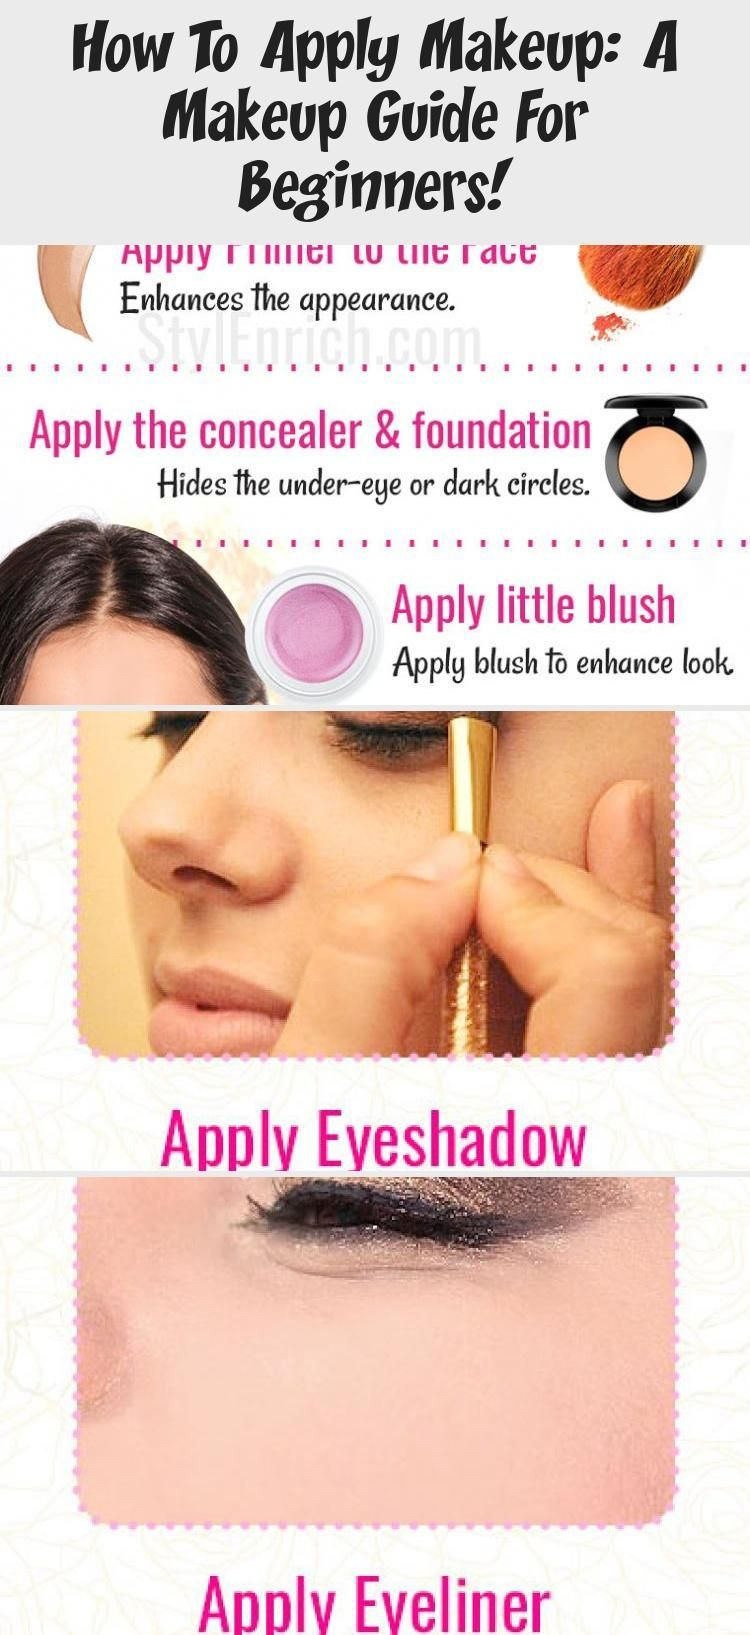 How To Apply Makeup A Makeup Guide For Beginners Accessory Howtoapplymakeup A Makeup Guide For B In 2020 How To Apply Makeup Makeup Guide Makeup For Beginners